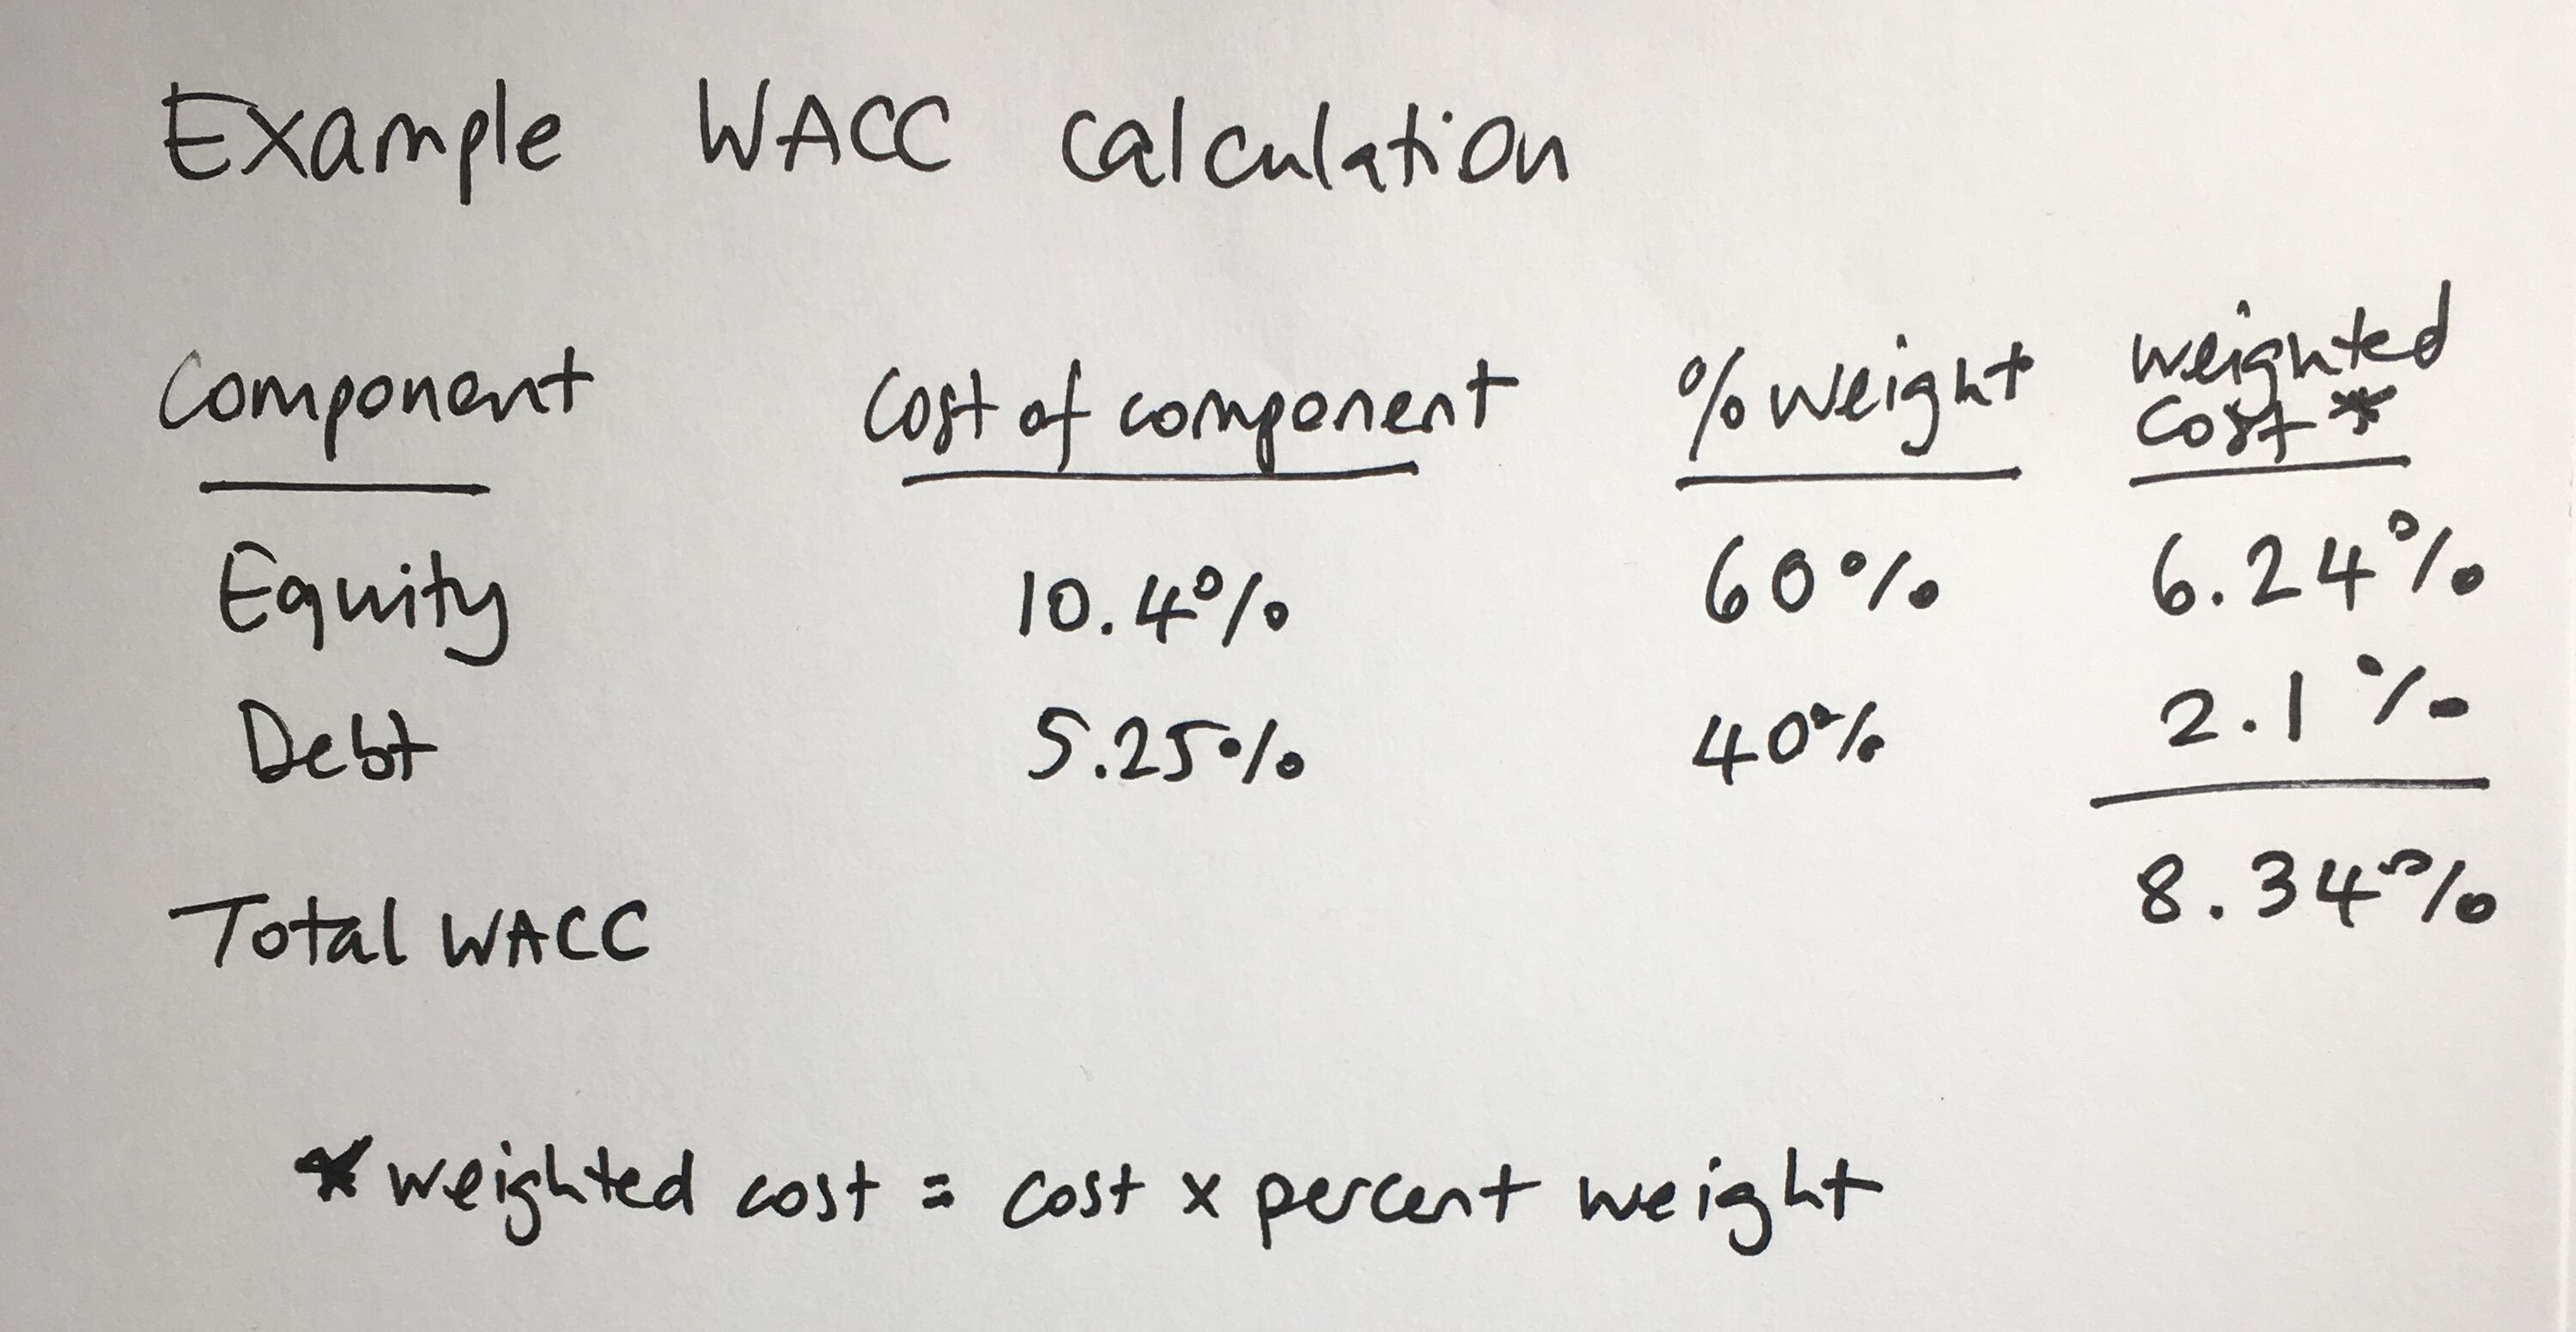 WACC calculation example